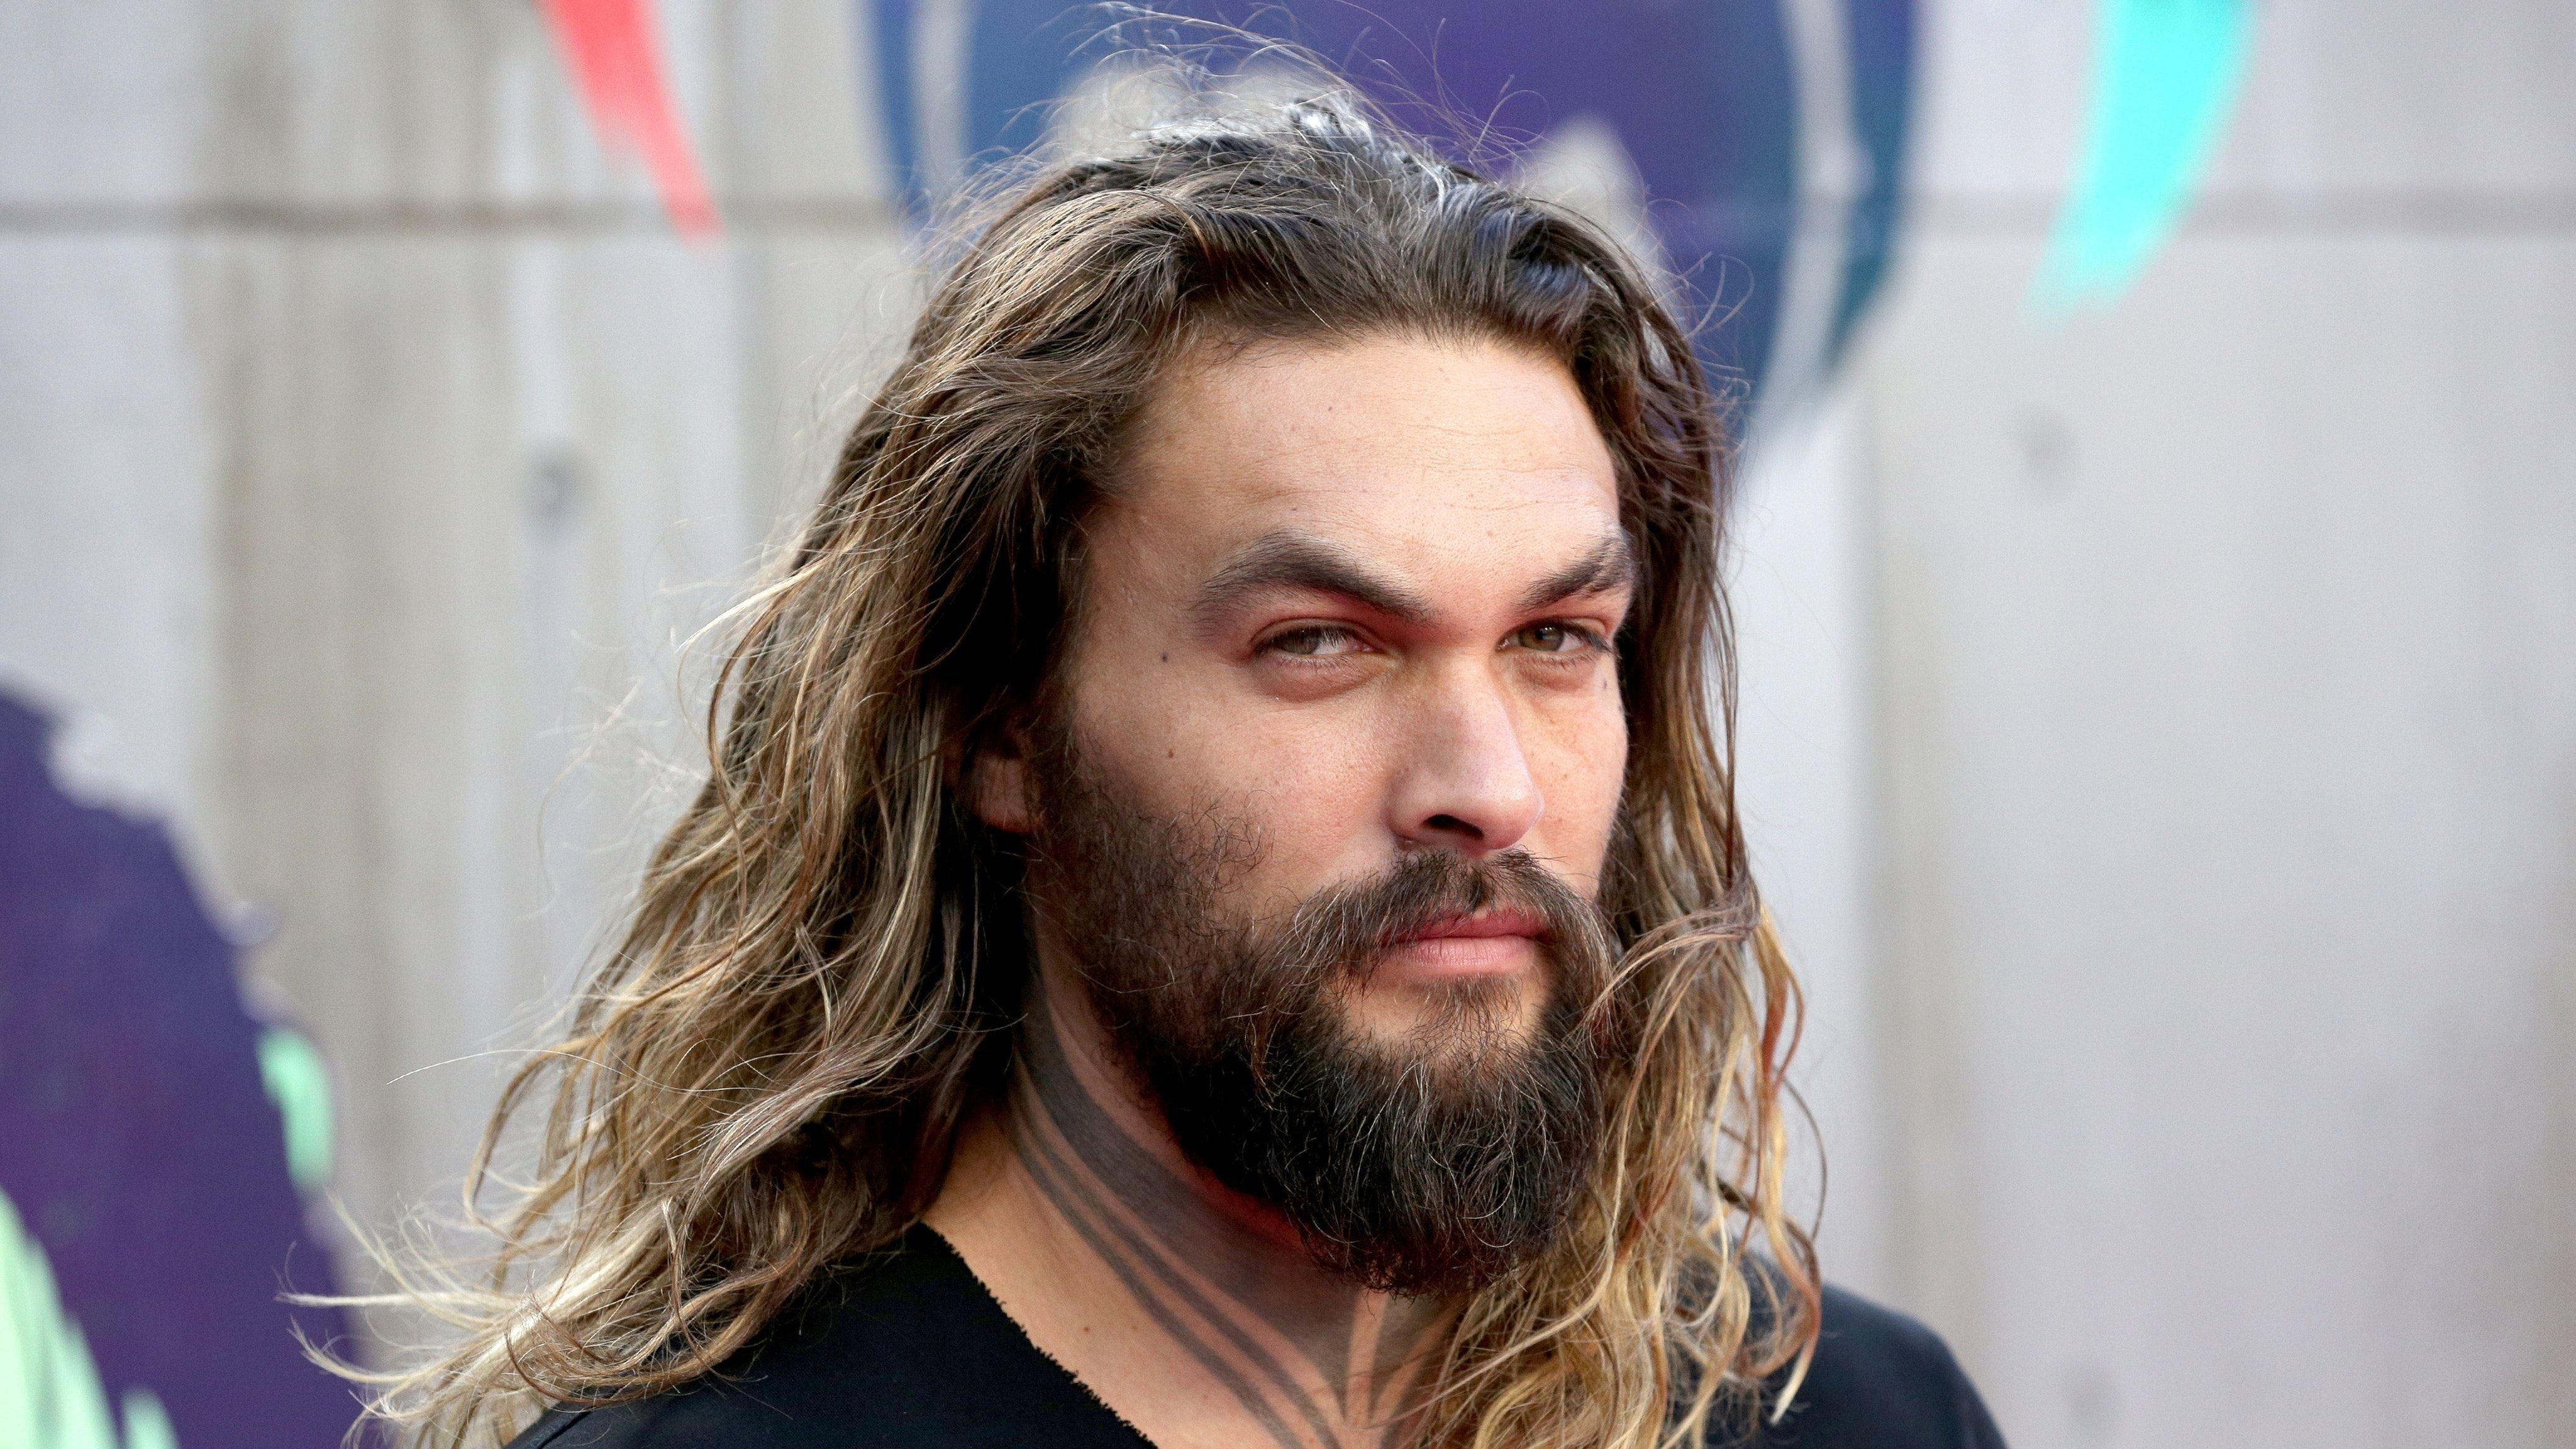 Jason Momoa Hairstyle Wide Wallpaper 209 4096x2304 Px